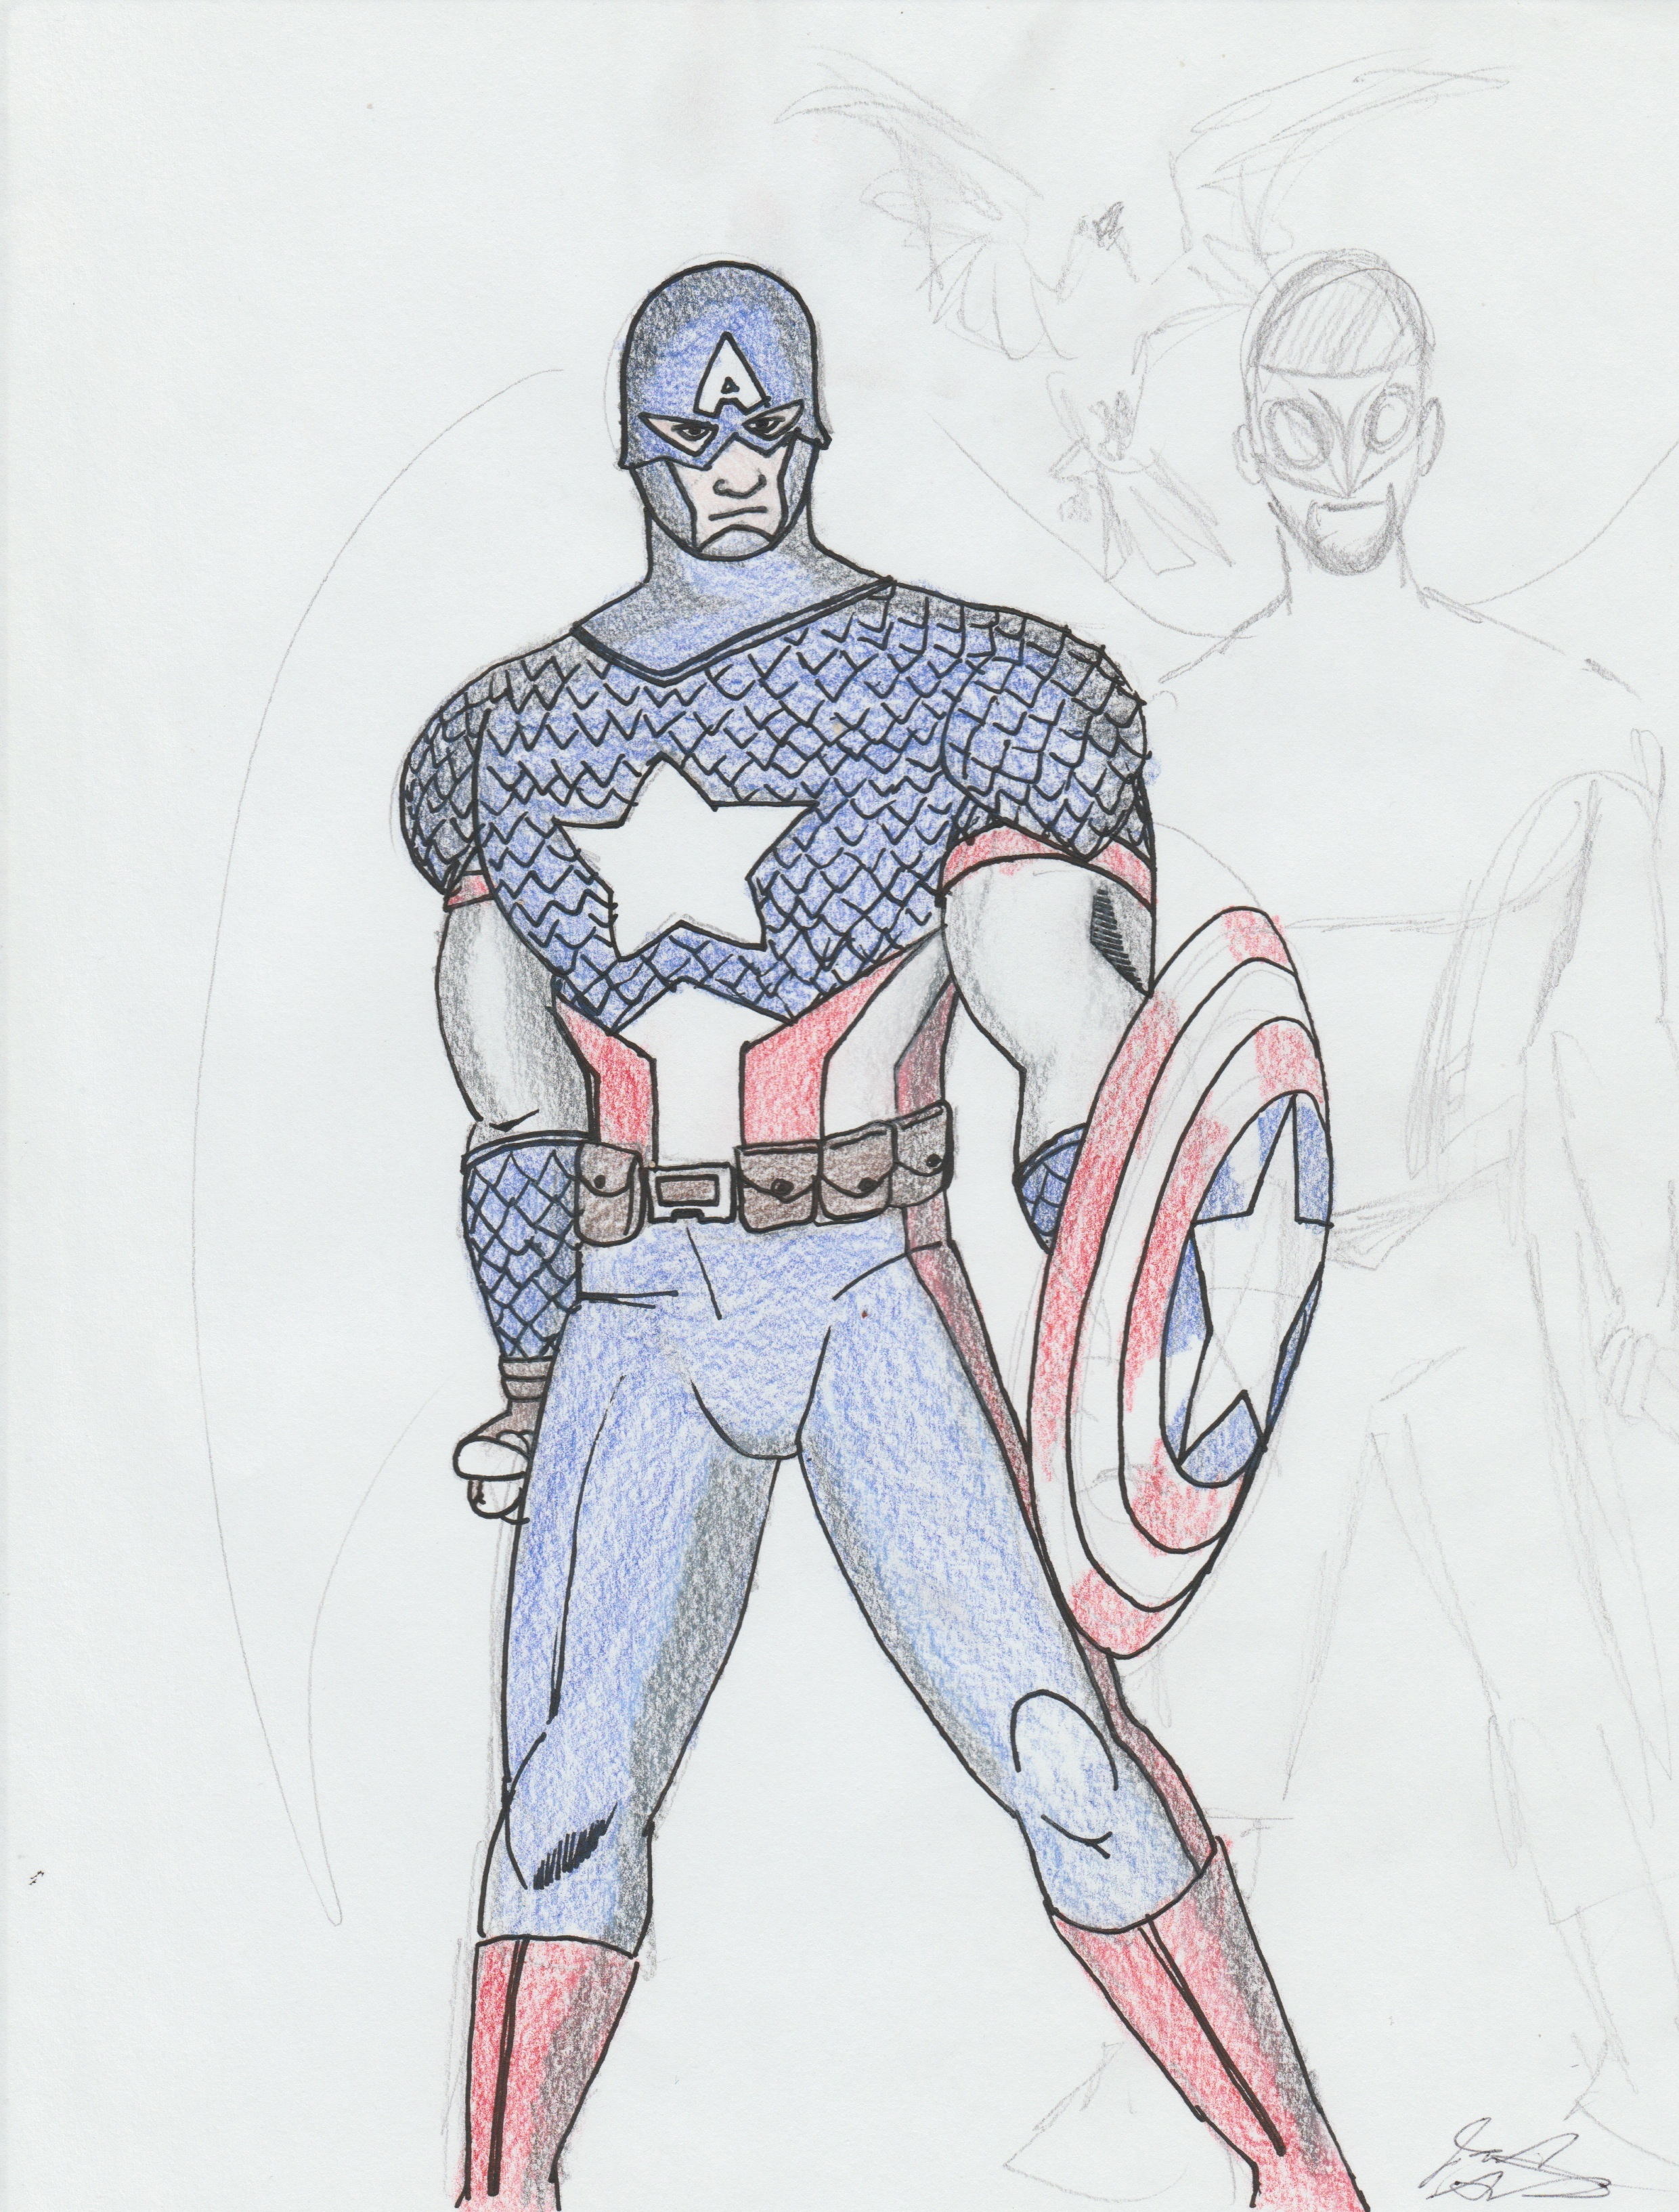 Captain America Costume With A Slight Re-Design